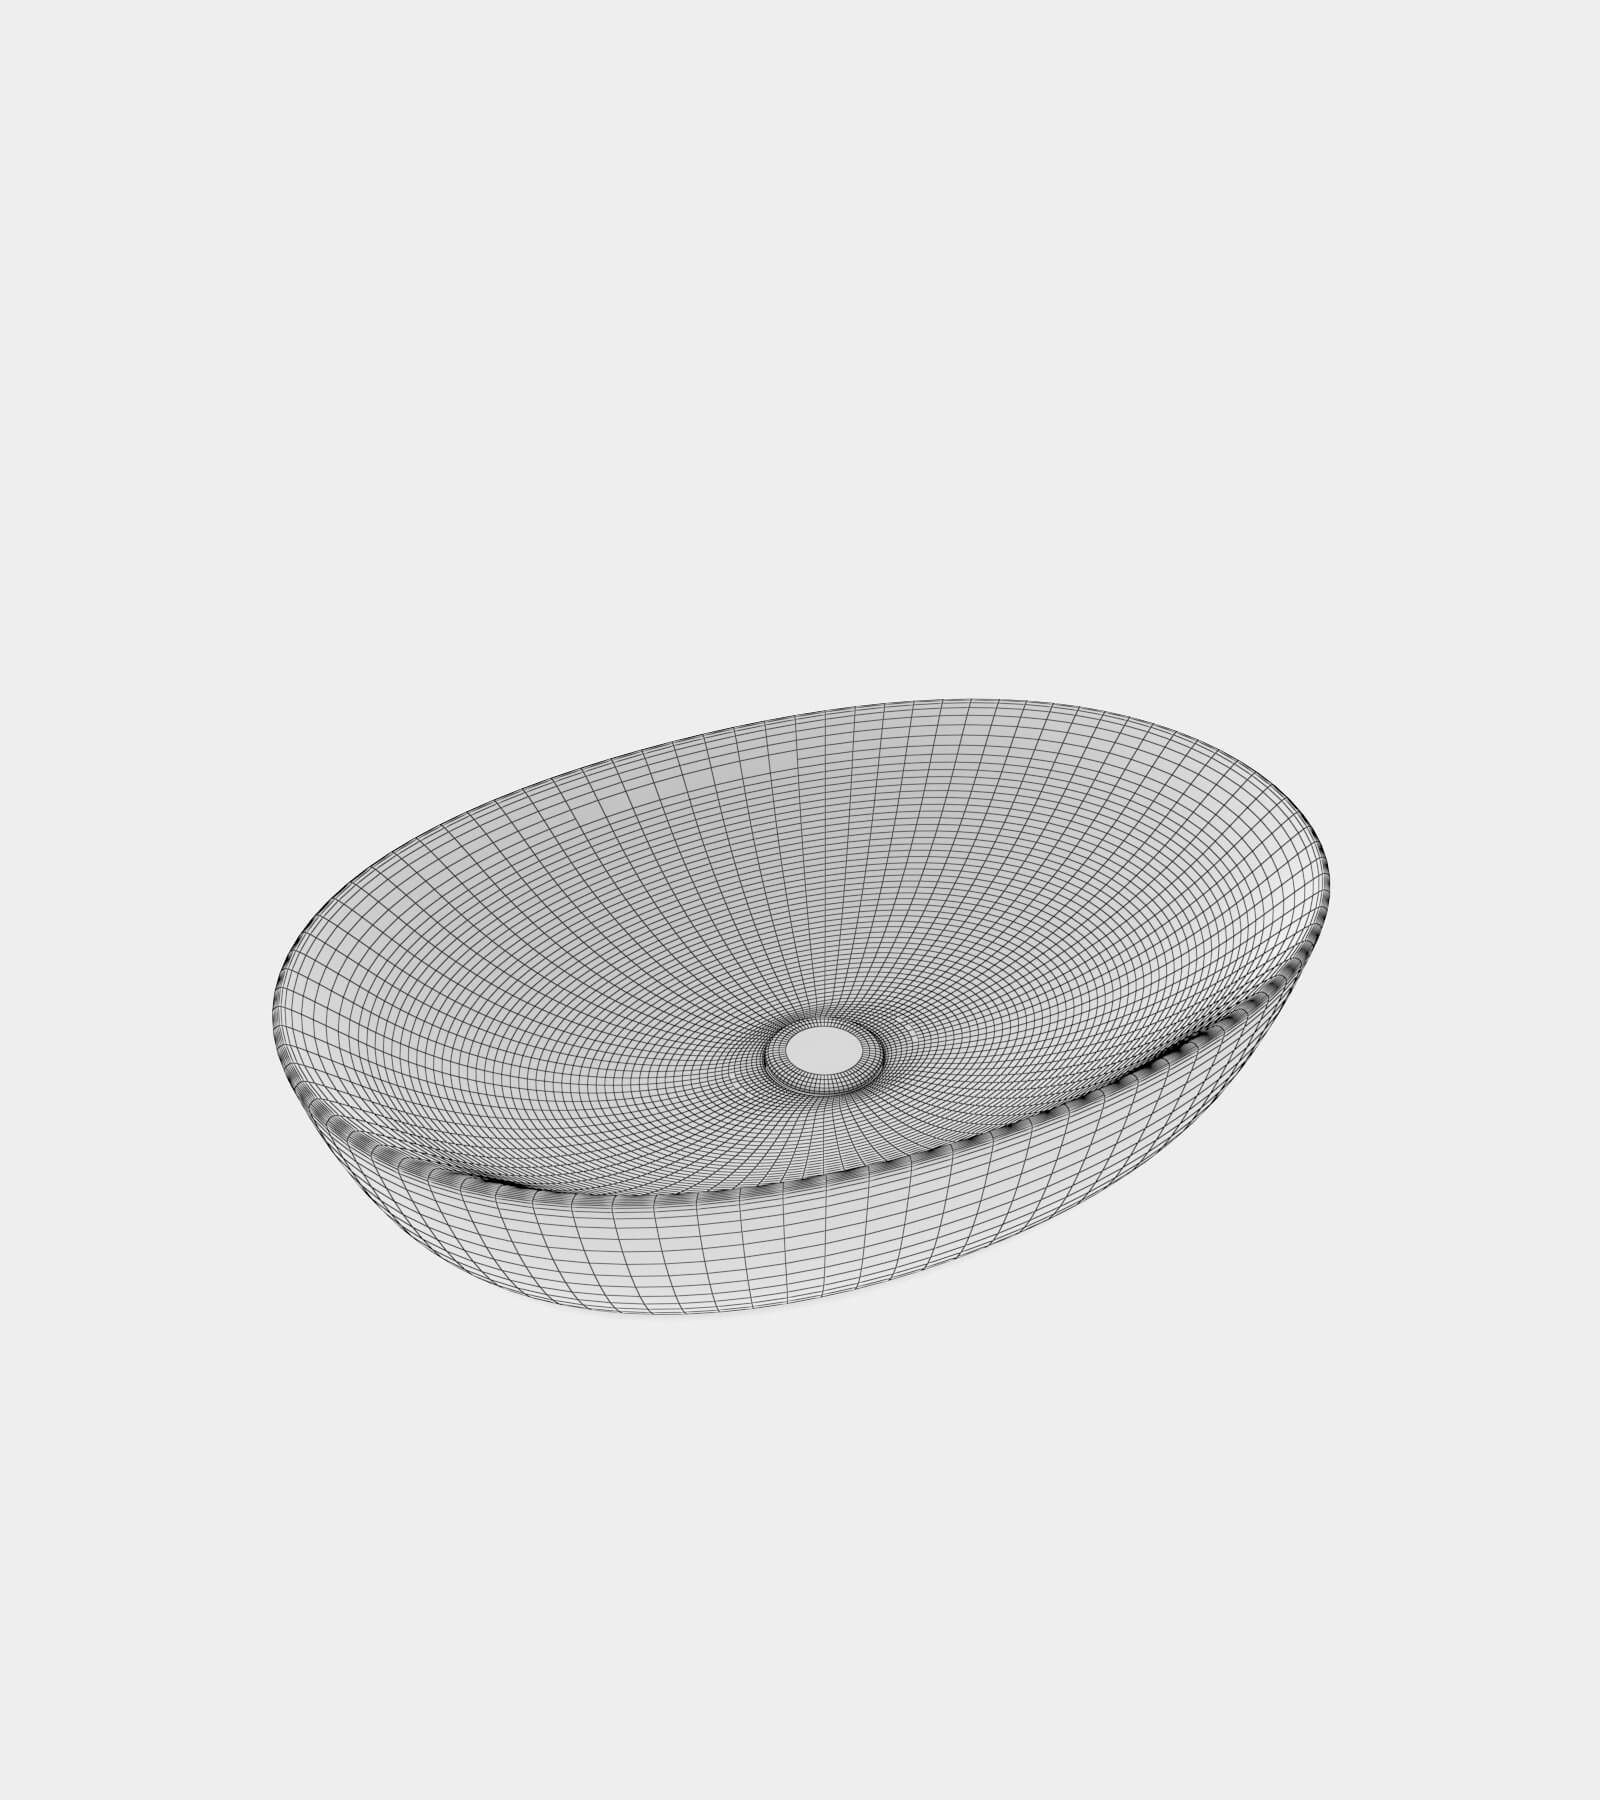 White wash basin with a round shape-wire-1 3D Model